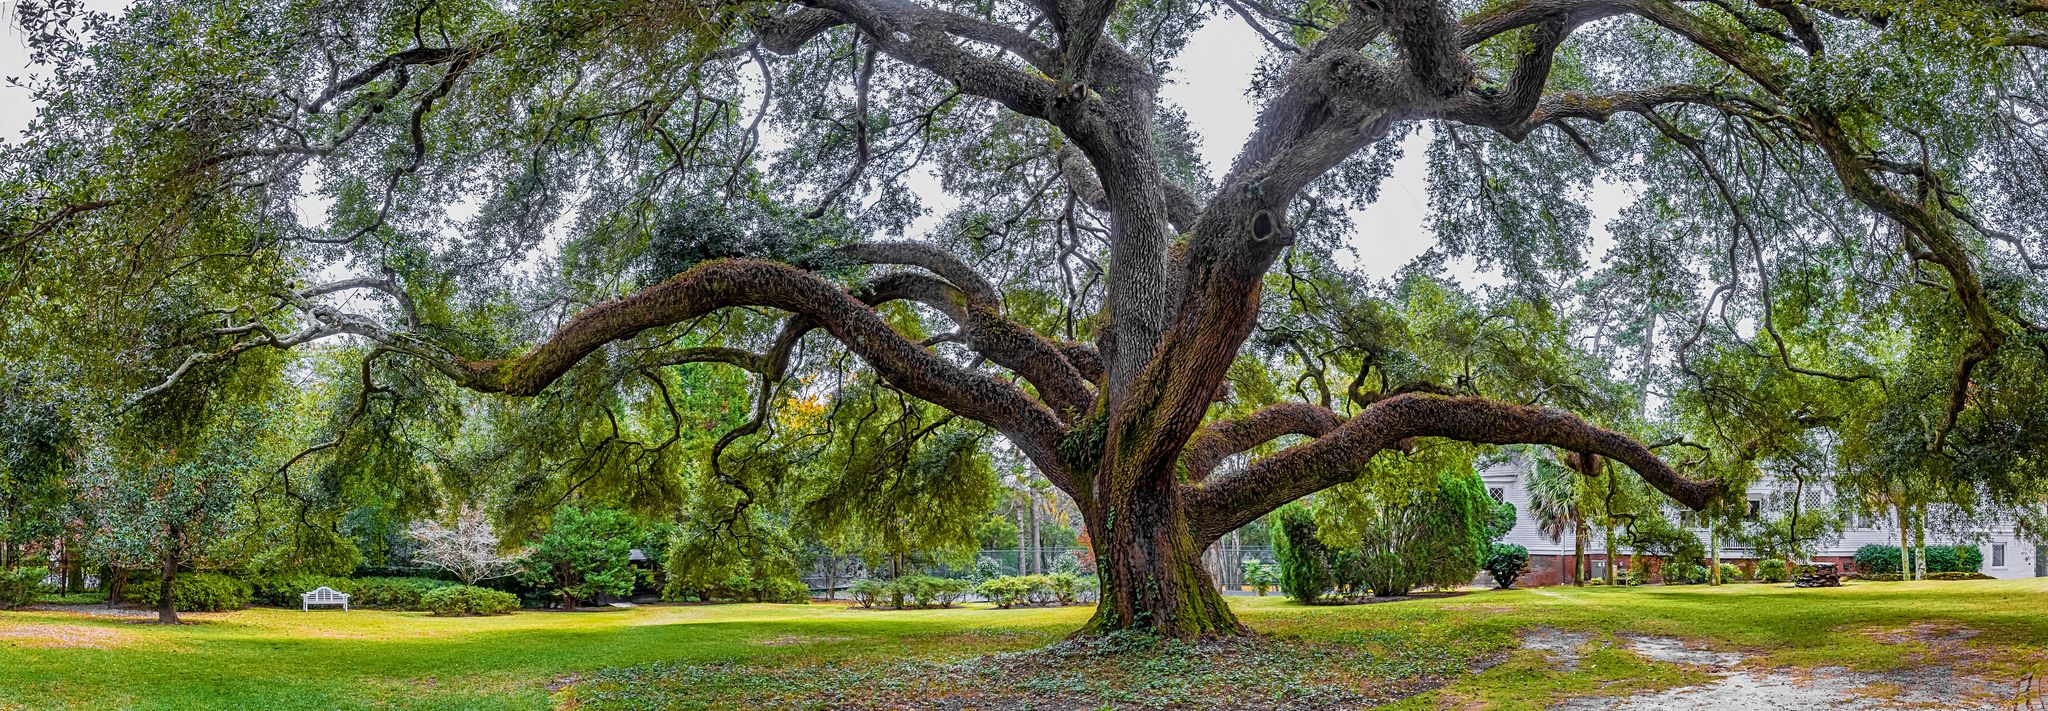 Panoramic of Live Oak Tree on First Avenue, Aiken, SC | Live oak trees,  Tree, Live oak